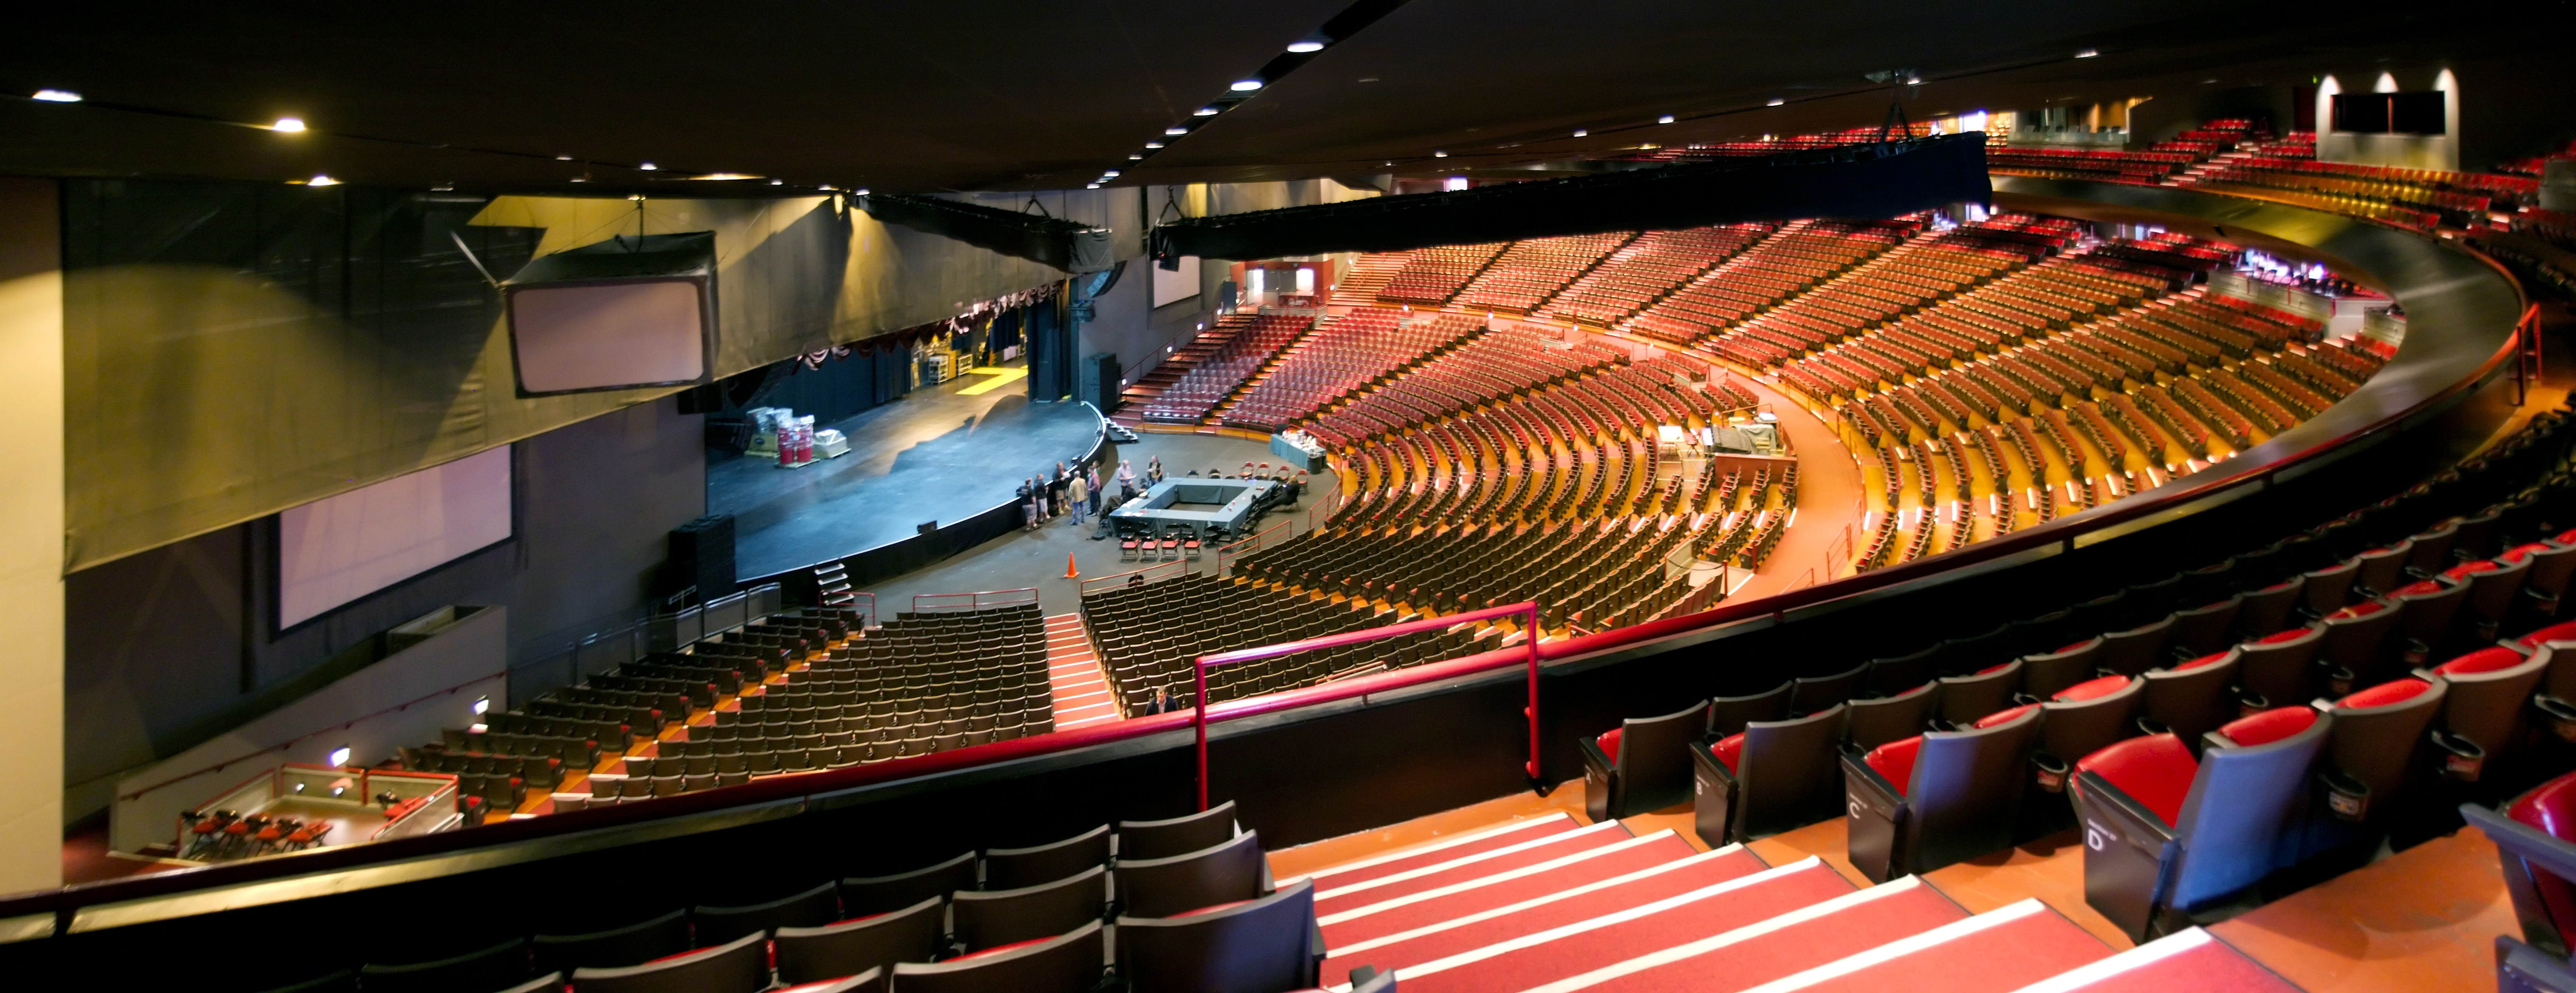 comerica theater map with File Gibson  Hitheatre Pano on Y29tZXJpY2Etc2VhdGluZy1jaGFydC1waG9lbml4 moreover Hippie Gypsy moreover BWFyaW5lcnMtc2VhdGluZy1jaGFydA as well Joe Louis Arena Mi Hotels moreover Venueinfo.